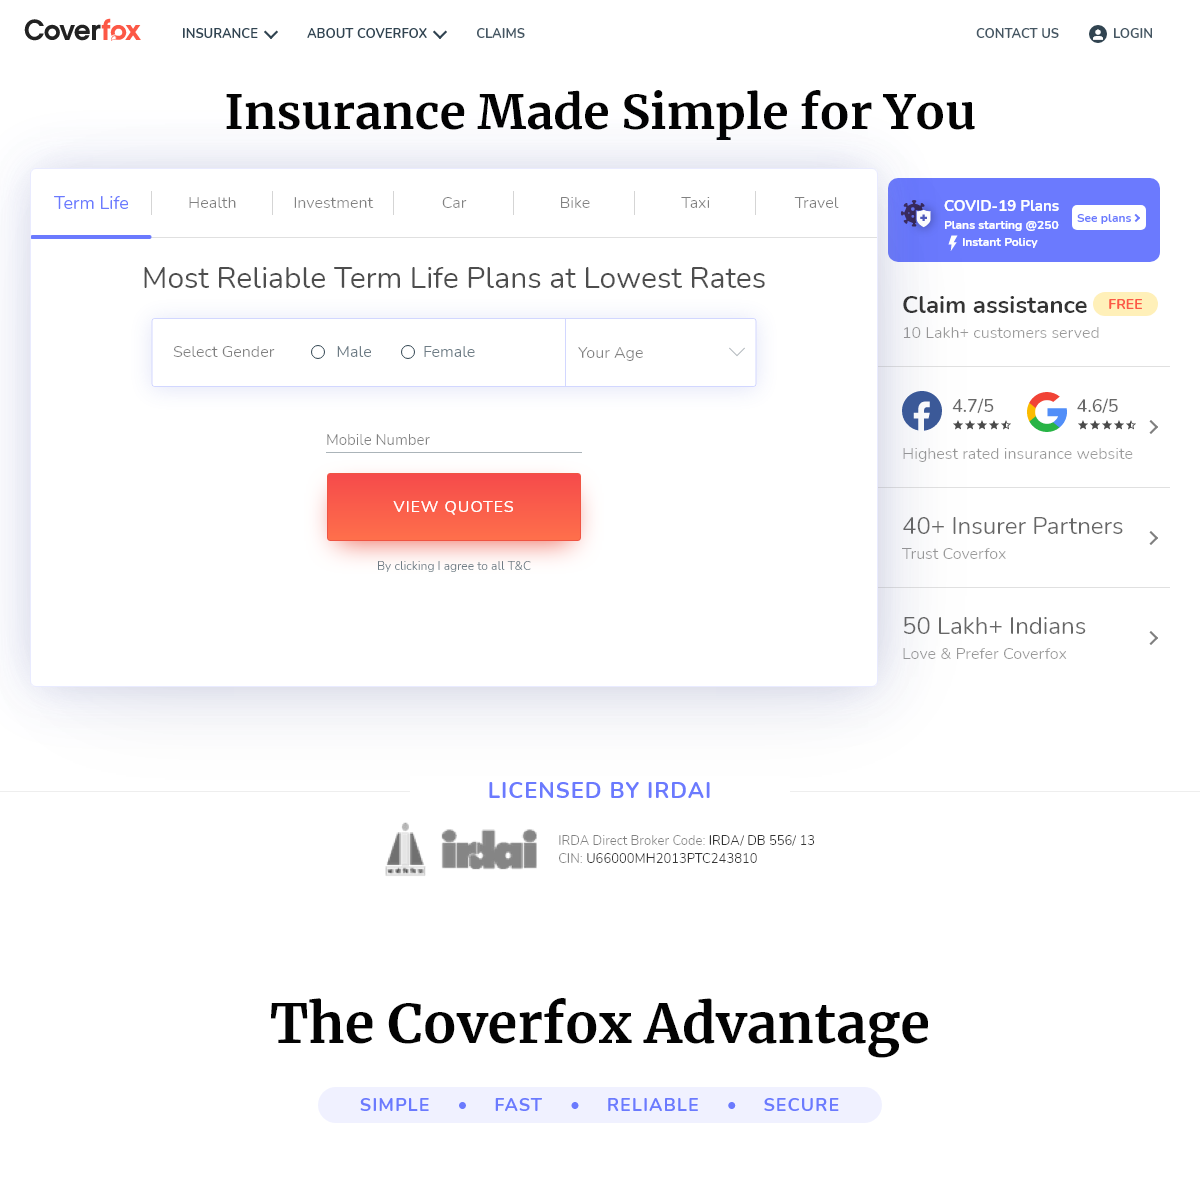 Compare Insurance Policy & Buy Insurance Plans & Policies Online - Coverfox.com